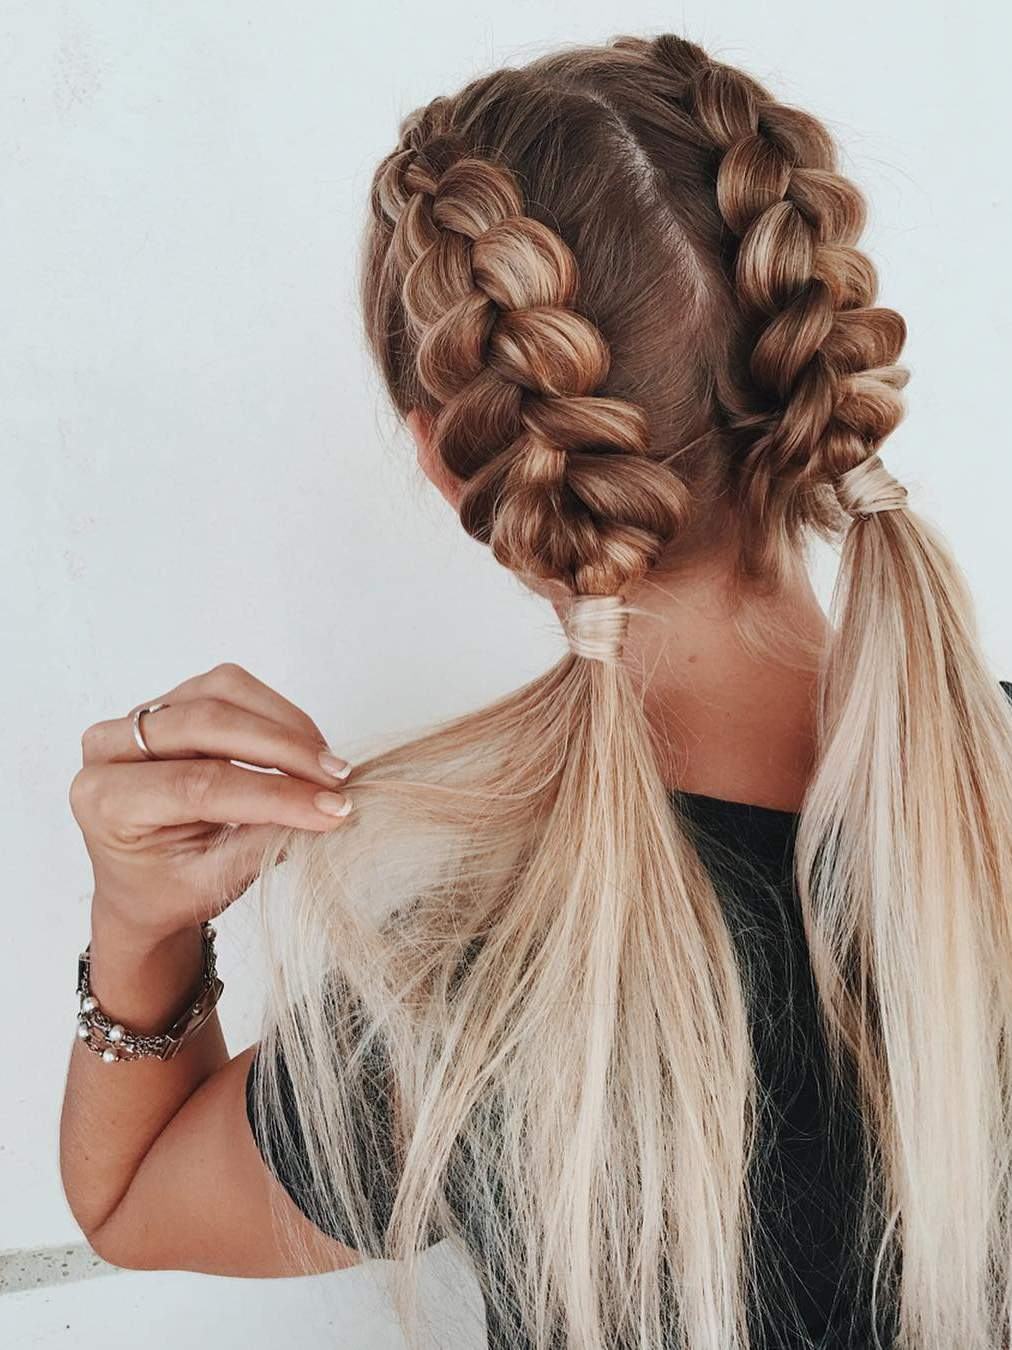 half hair style 7 braided hairstyles that are loving on 5219